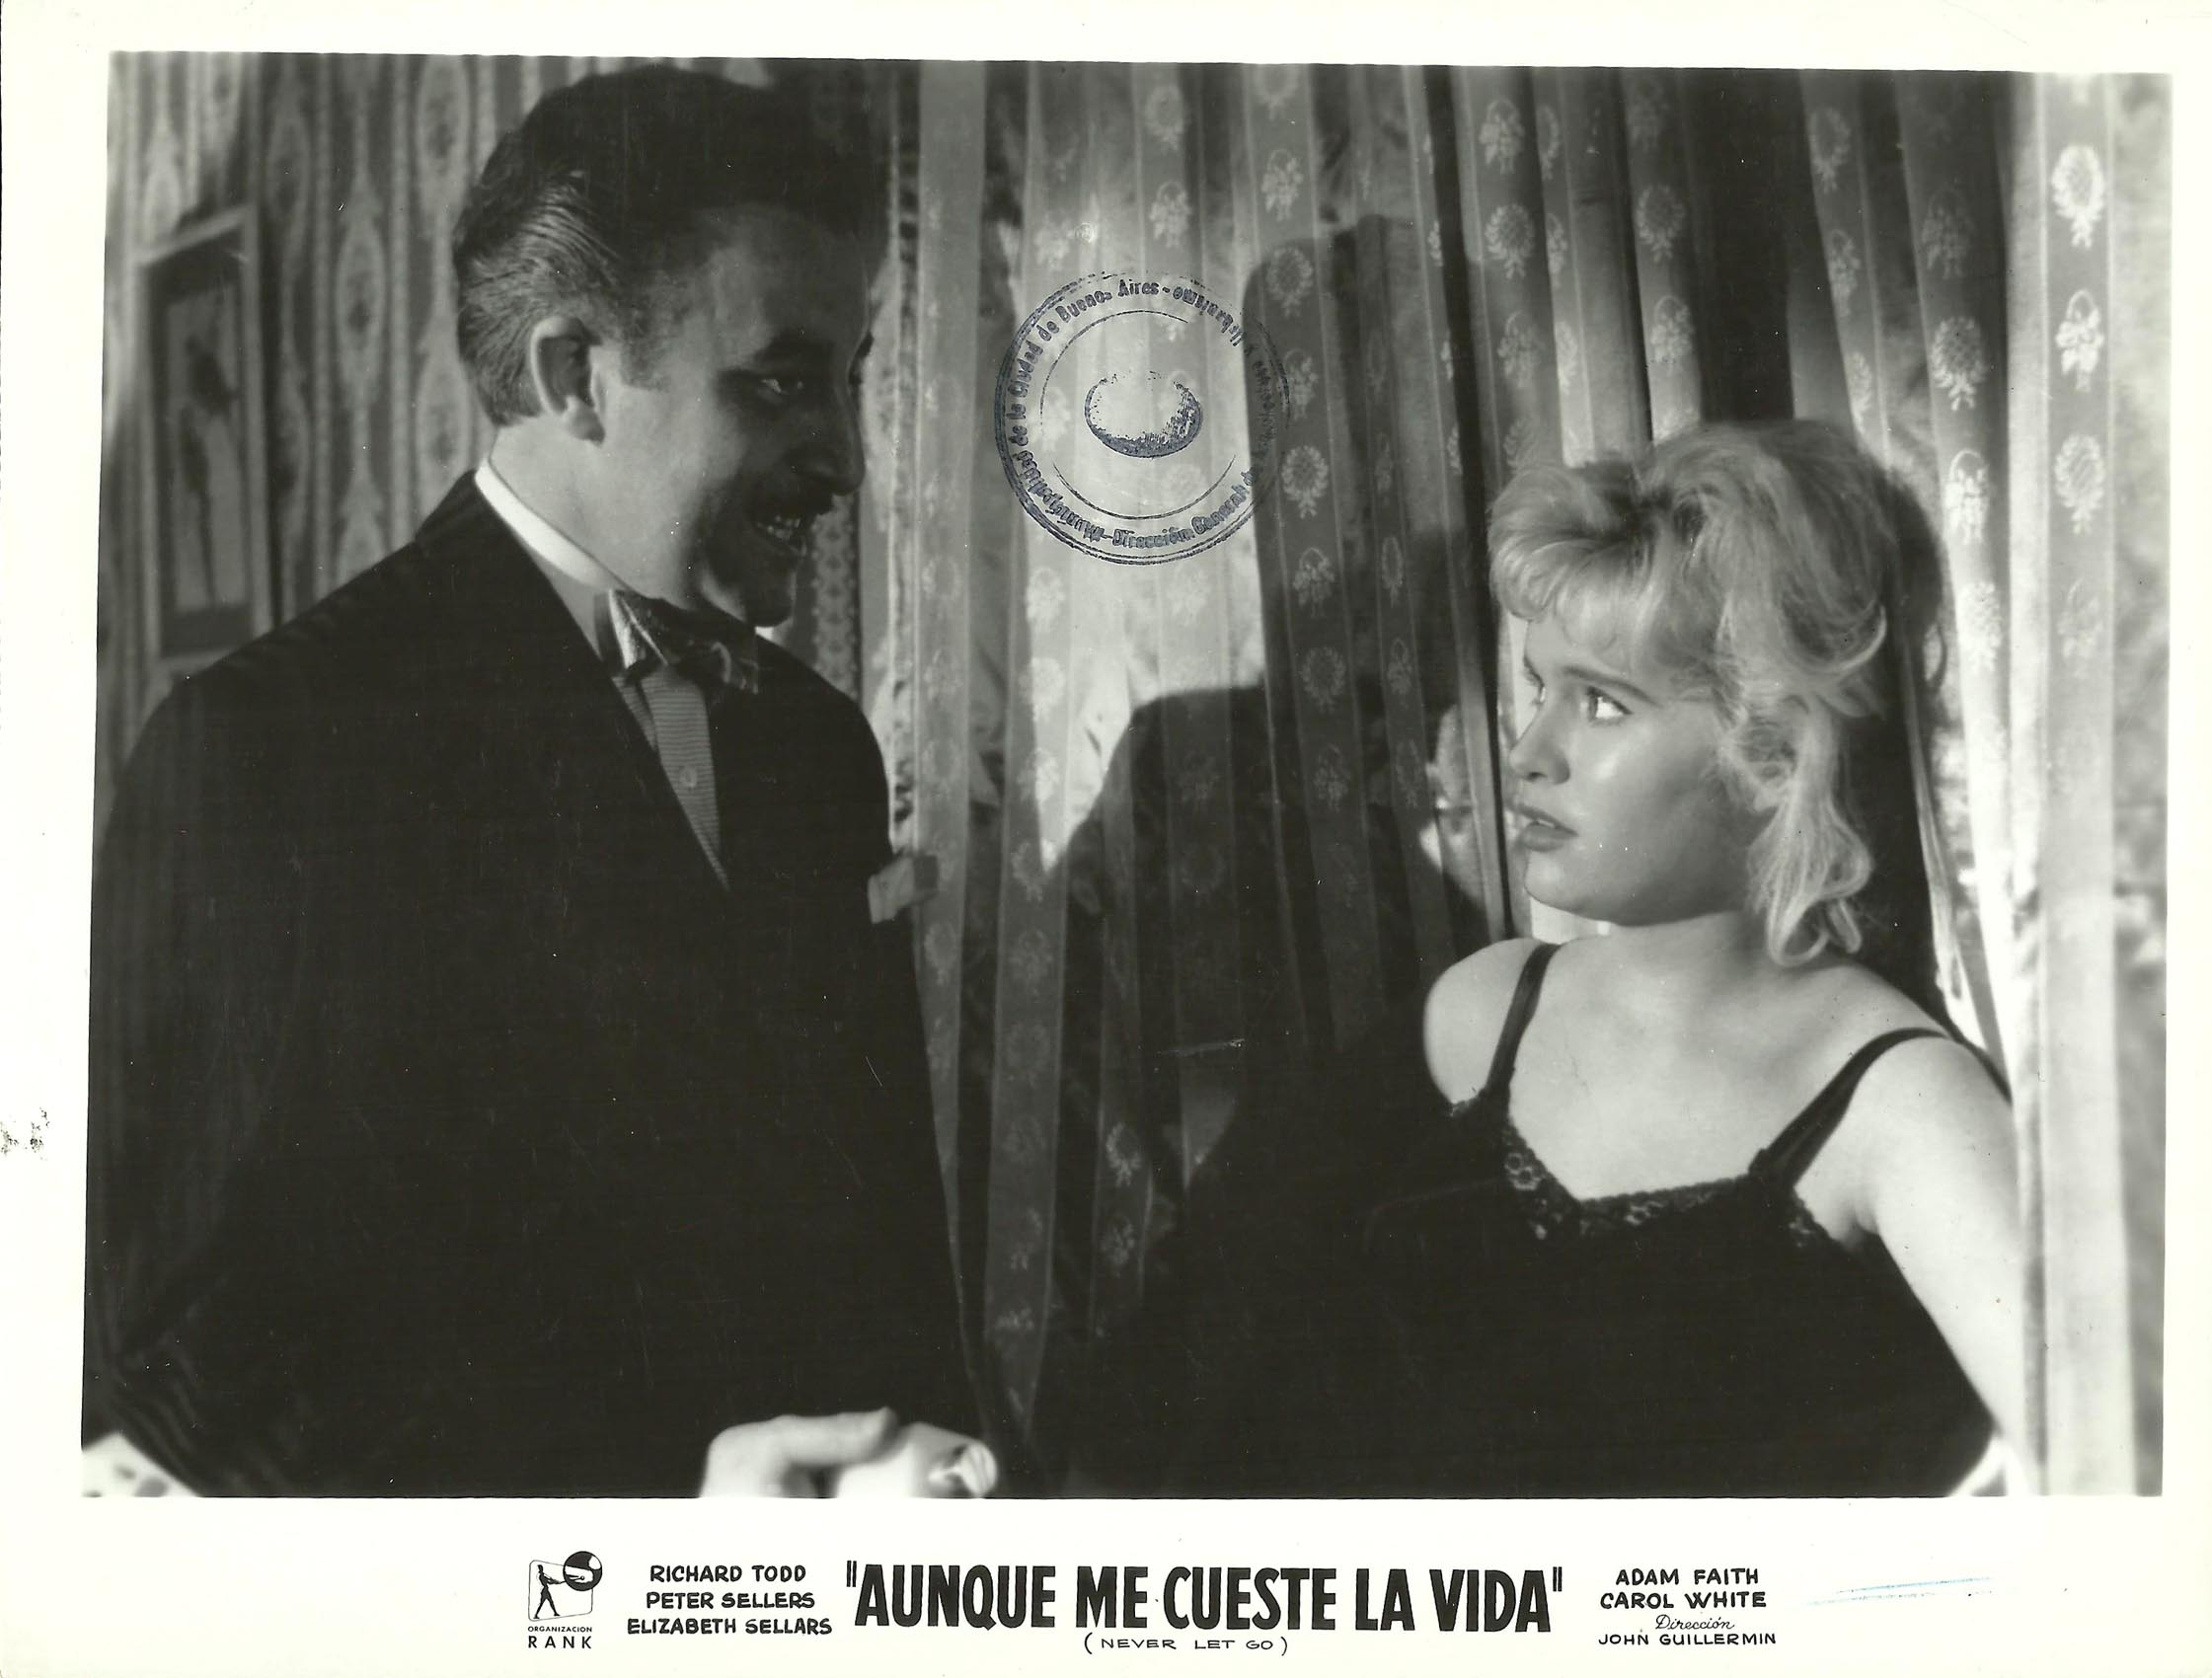 Peter Sellers and Carol White in Never Let Go (1960)